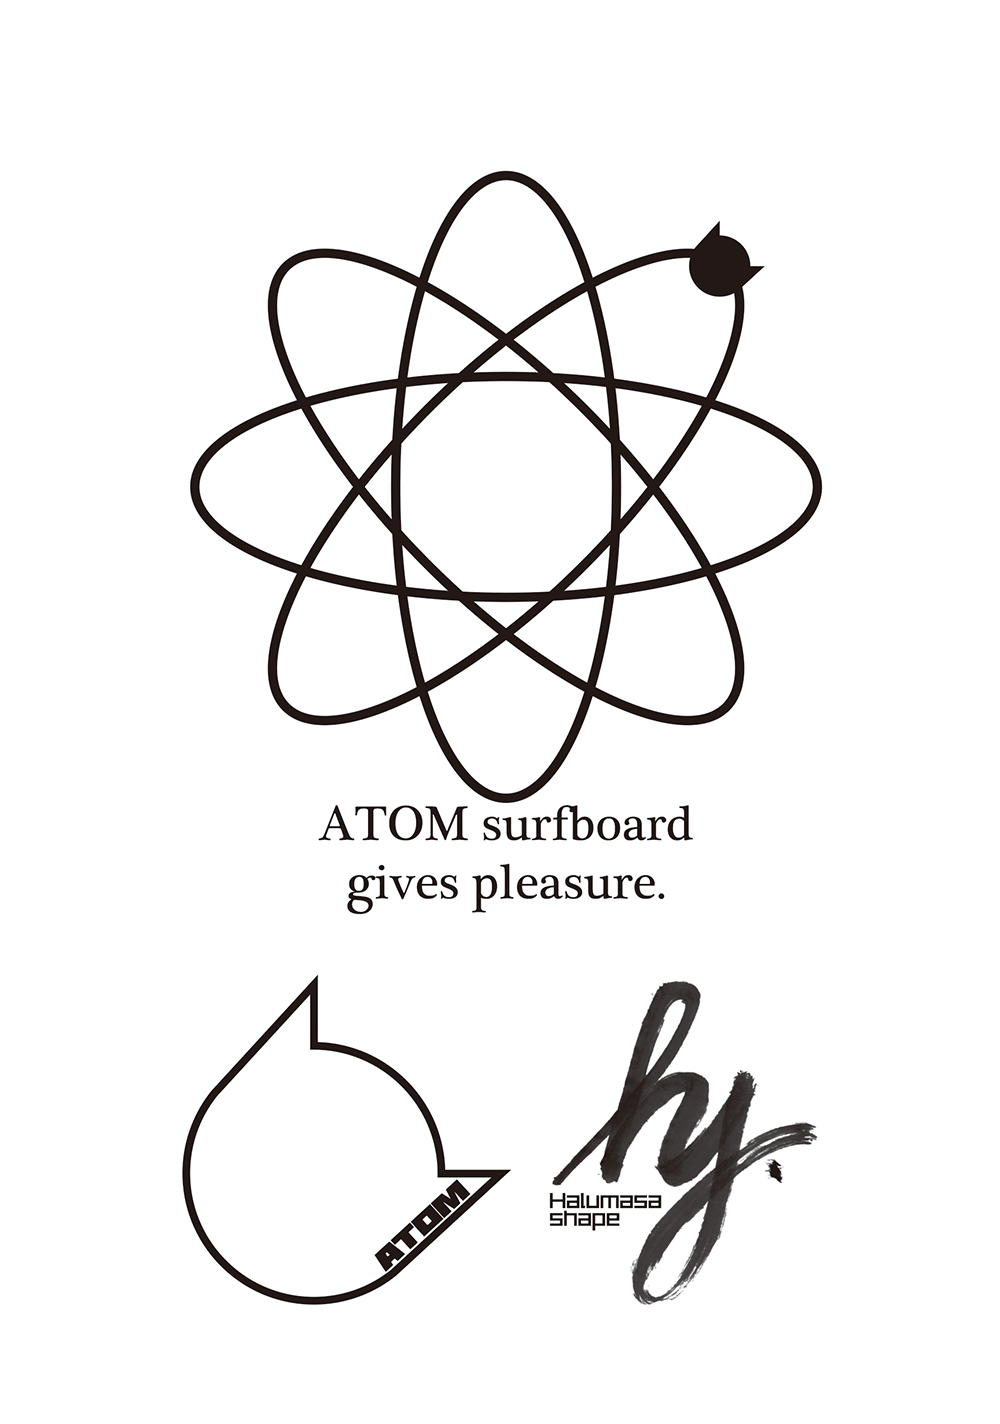 ATOM Surfboard gives pleasure.